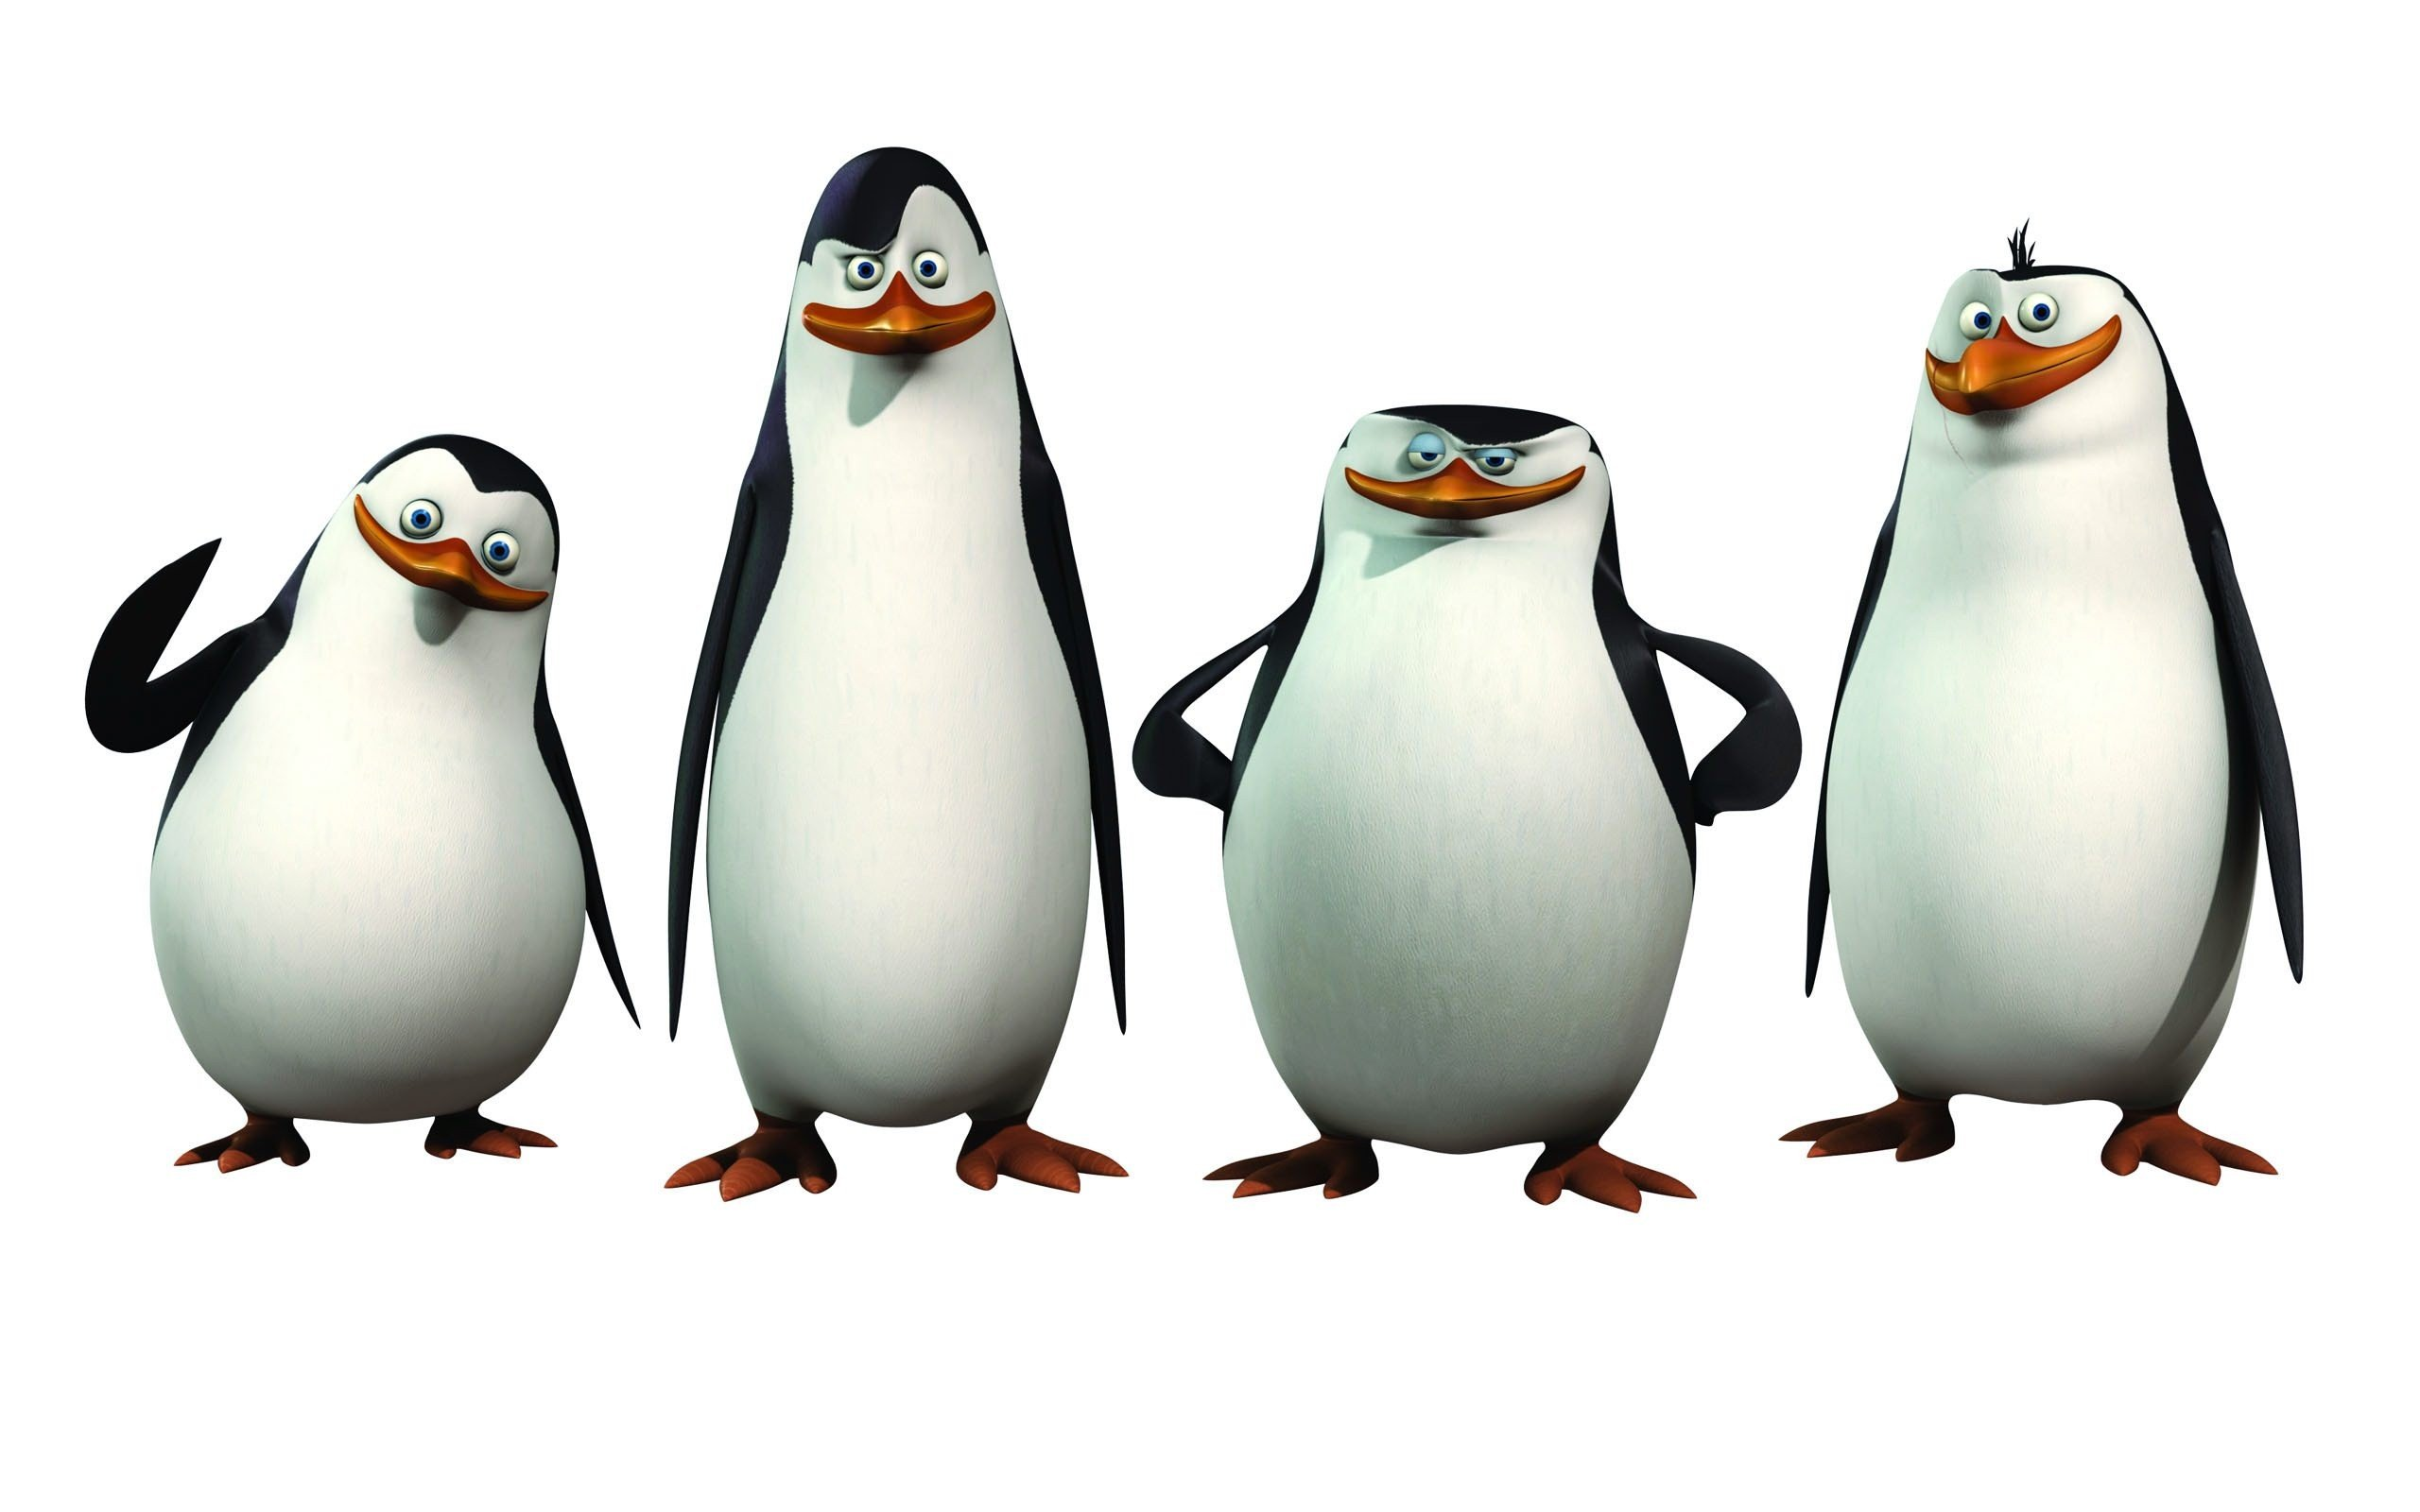 Penguins Of Madagascar Animation Comedy Adventure Family